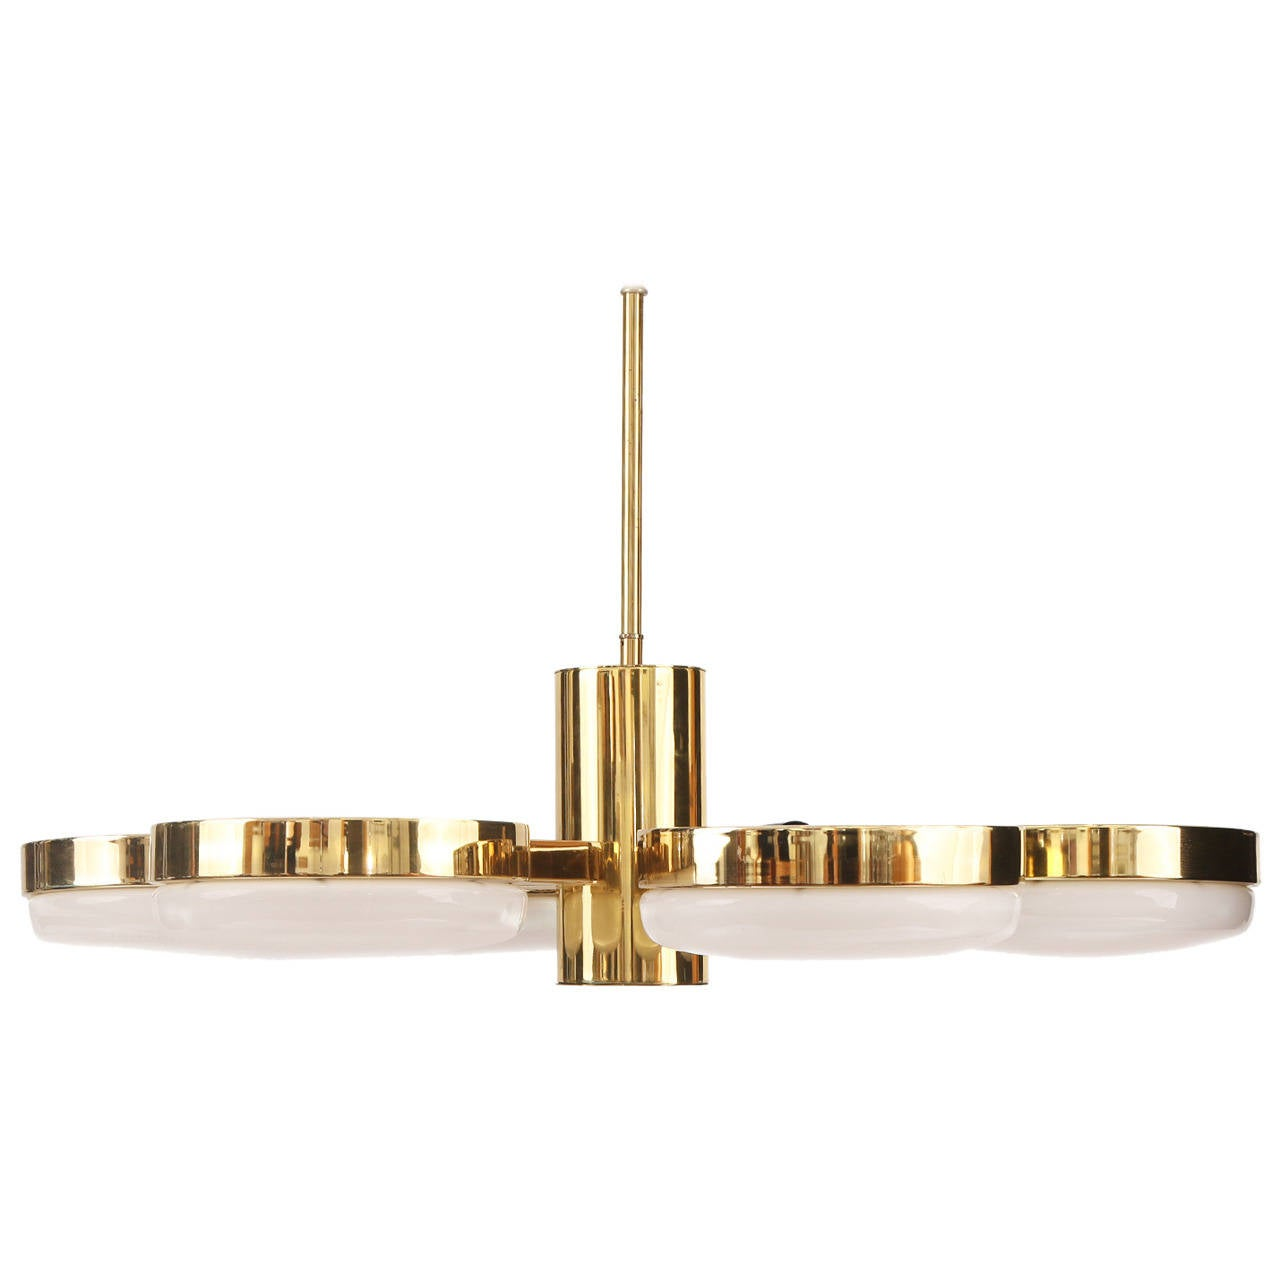 Polished Brass And Glass Six Arm Chandelier By Feldman At